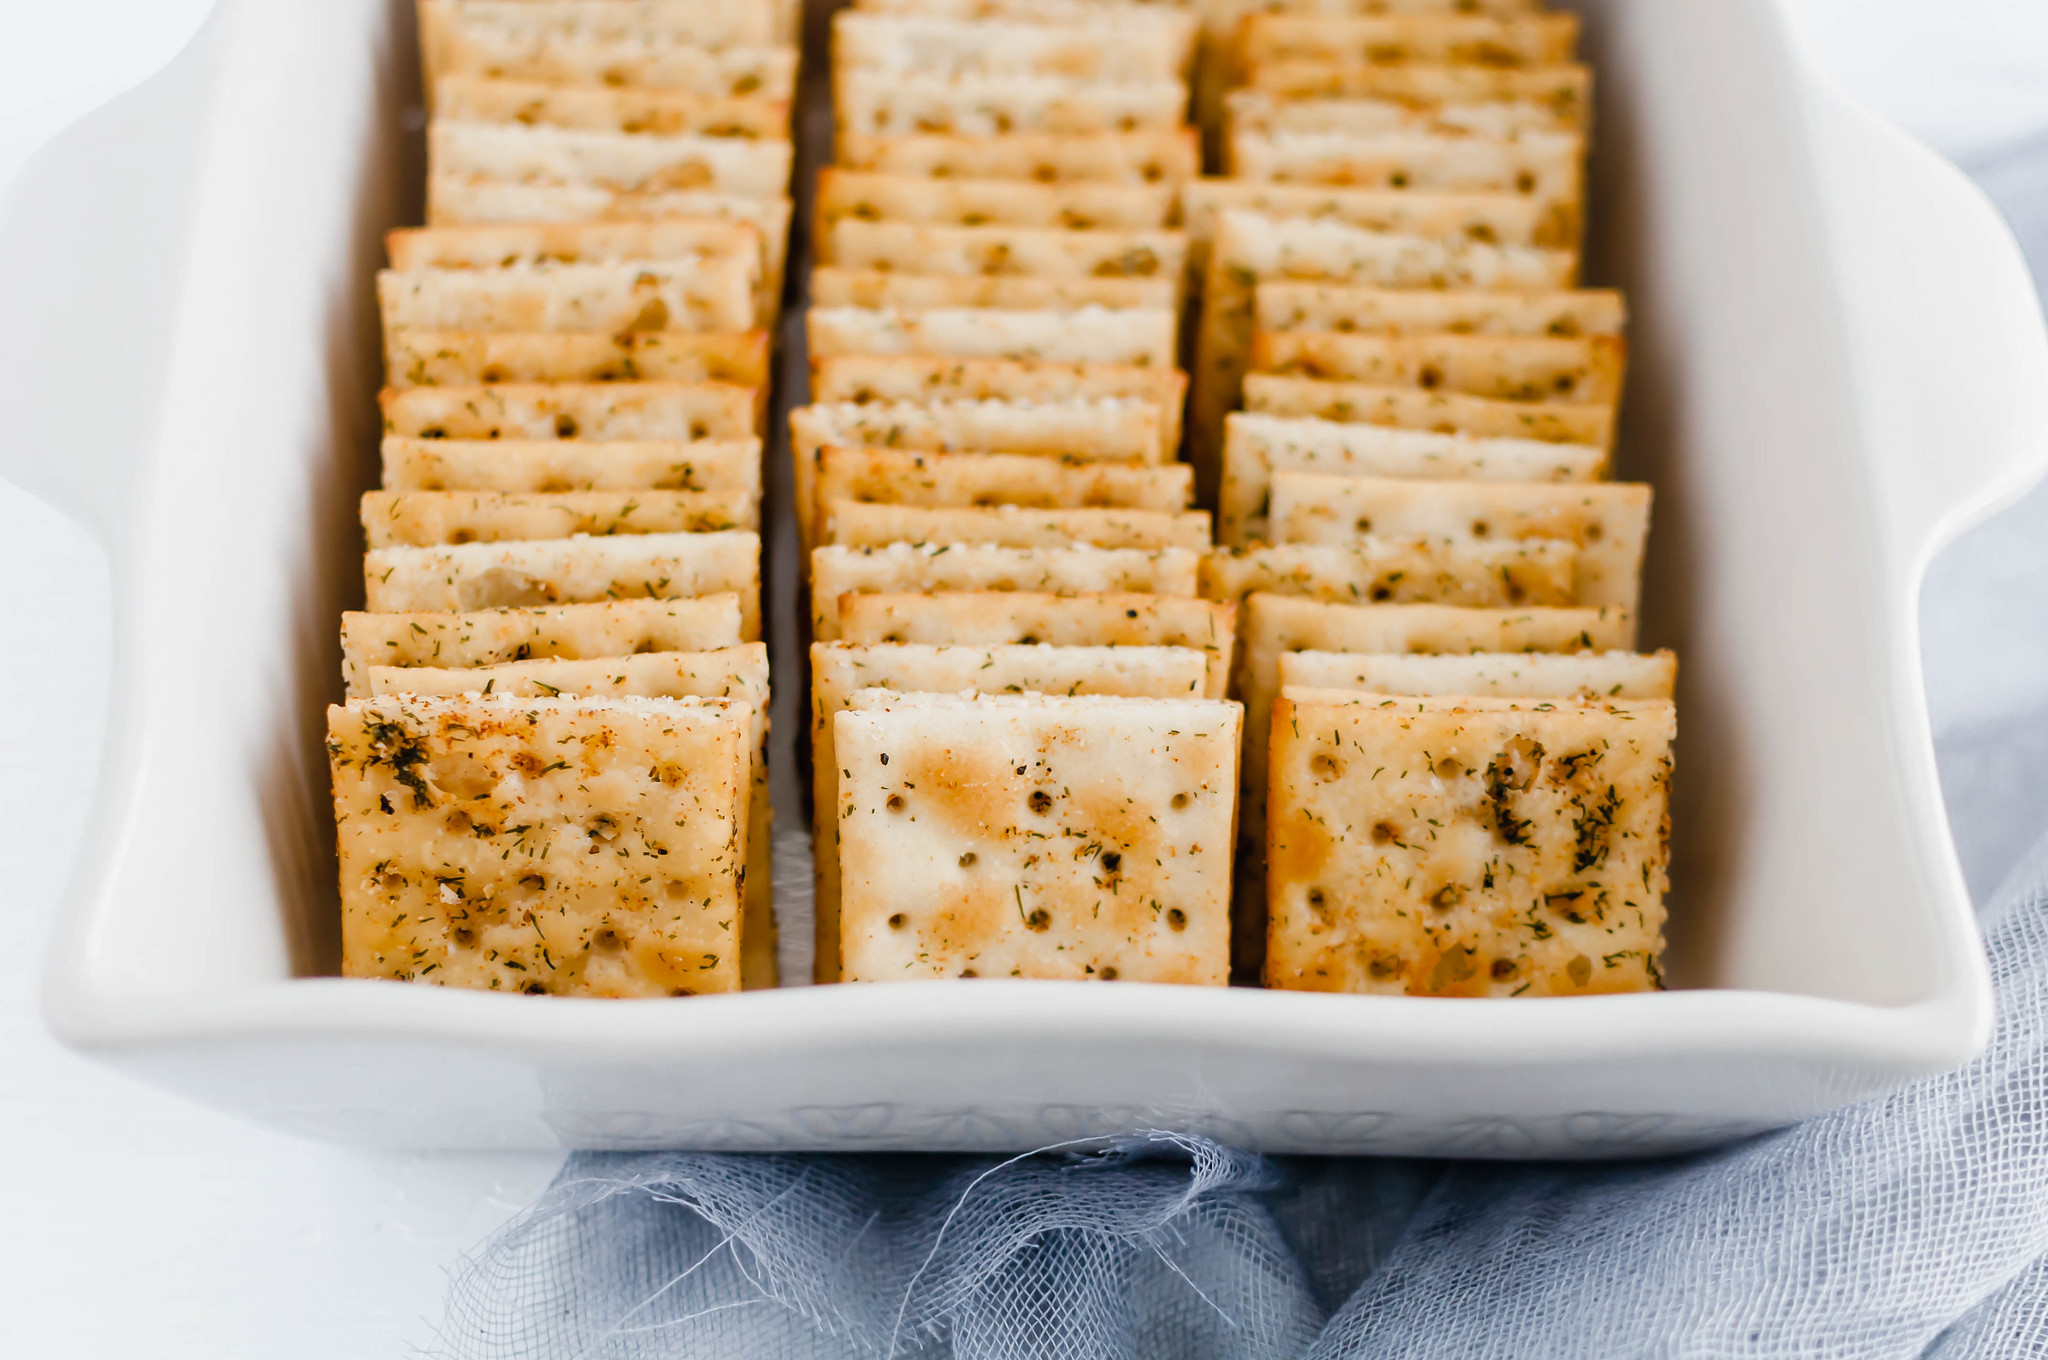 Seasoned Saltine Crackers are wonderful as a snack or a dipper for all the soups this winter. Tossed in oil, spices and herbs then baked to crispy perfection.